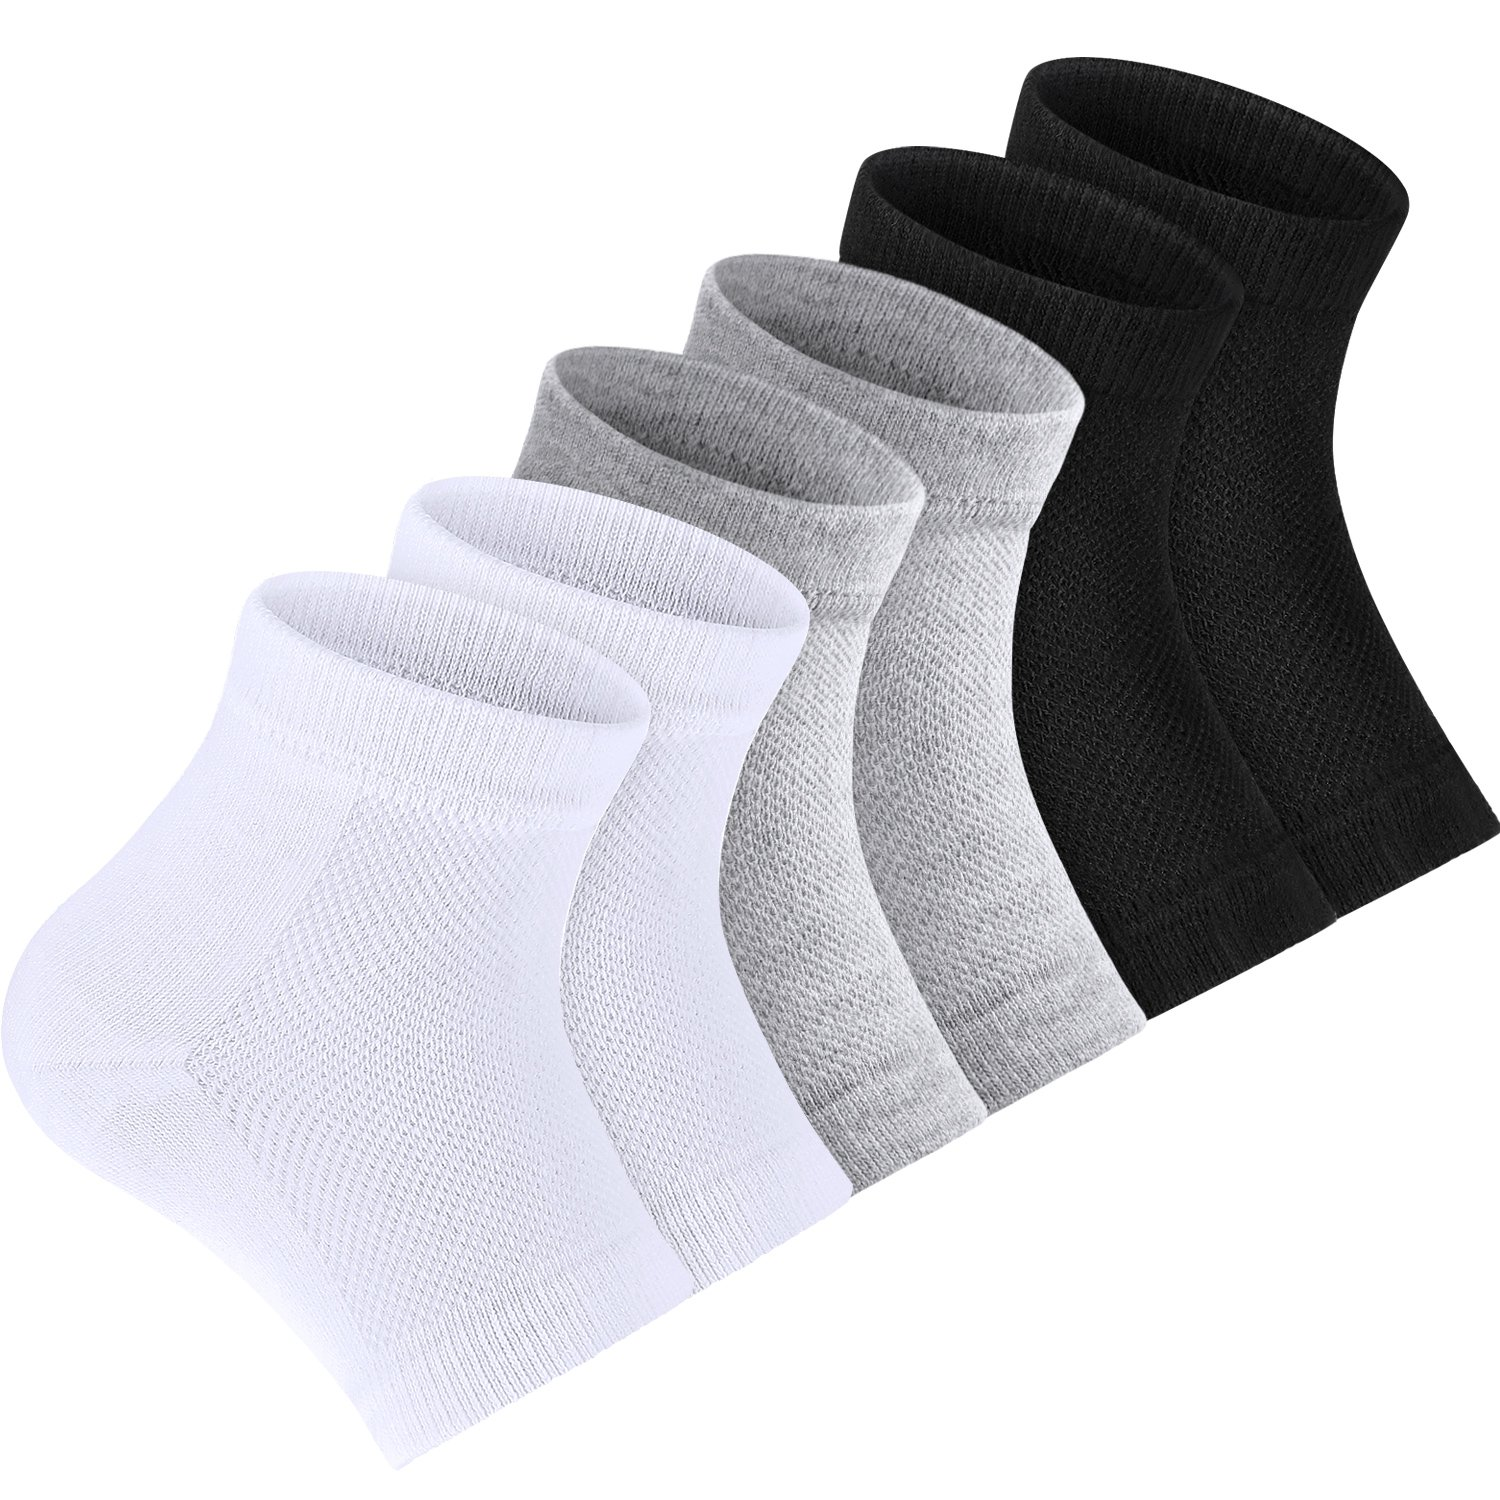 Bememo Soft Ventilate Gel Heel Socks Open Toe Socks for Dry Hard Cracked Skin Moisturizing Day Night Care Skin, 3 Pairs (Black, White, Grey)